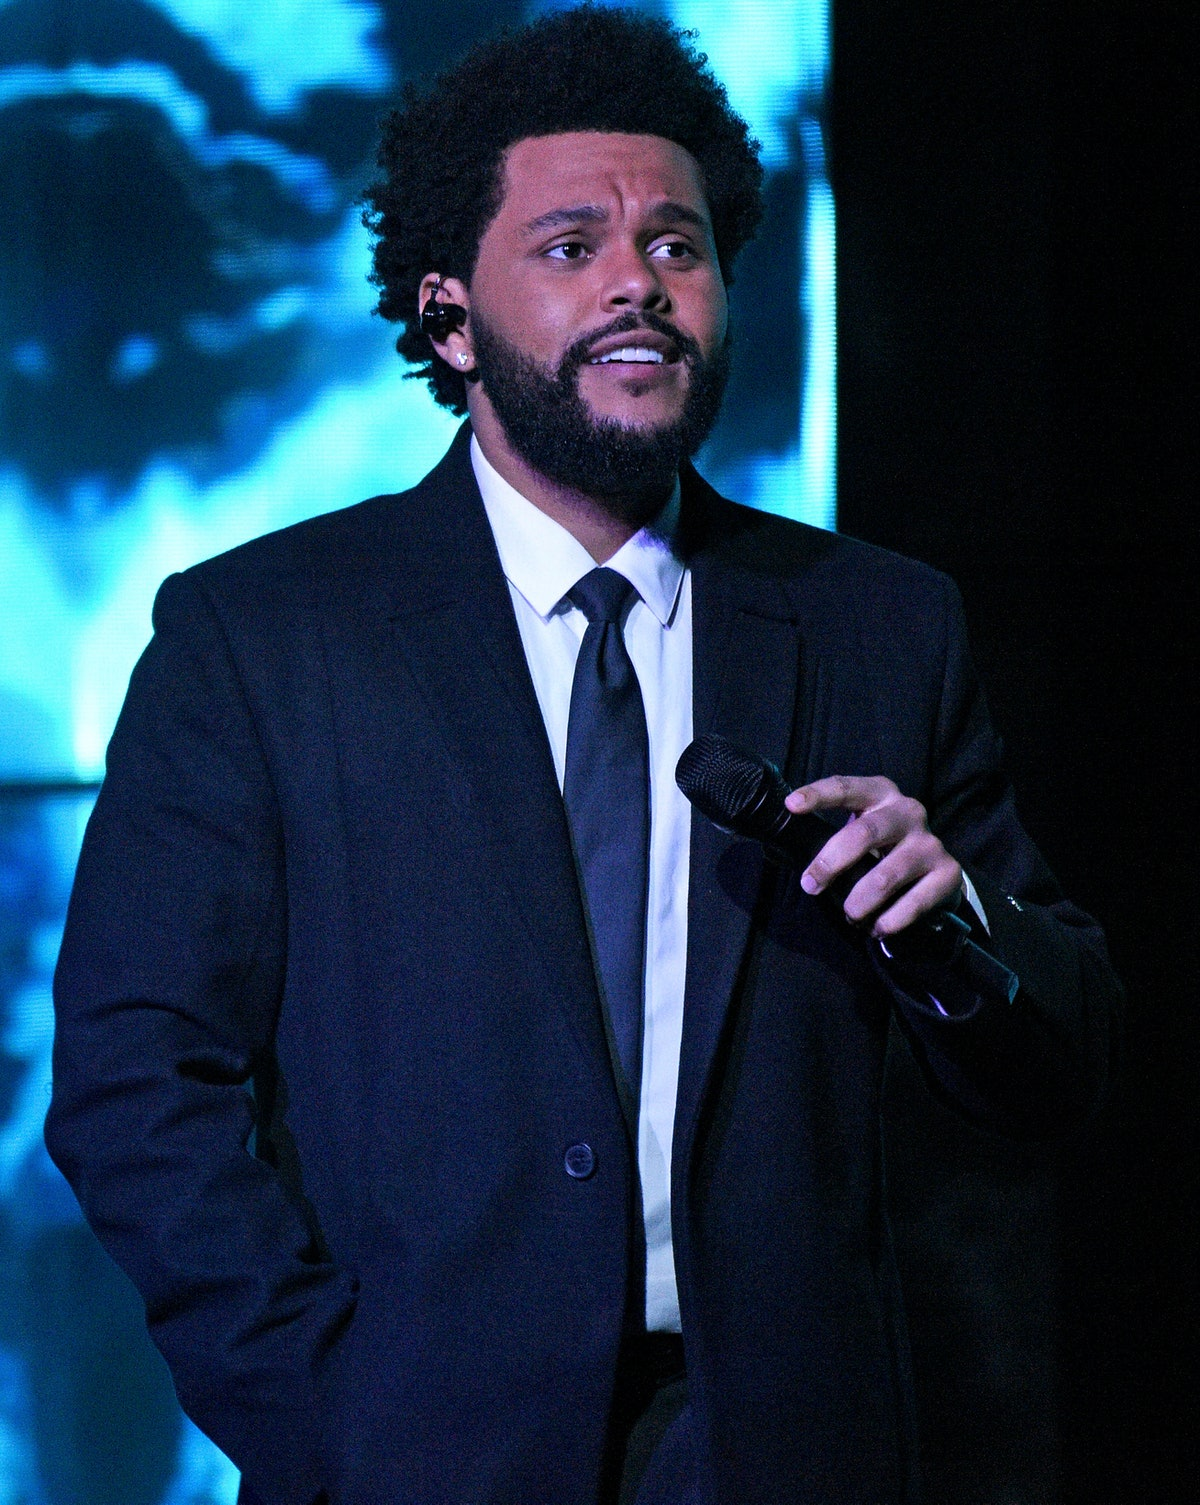 The Weeknd is making a HBO show called 'The Idol' about a pop singer and a cult leader.